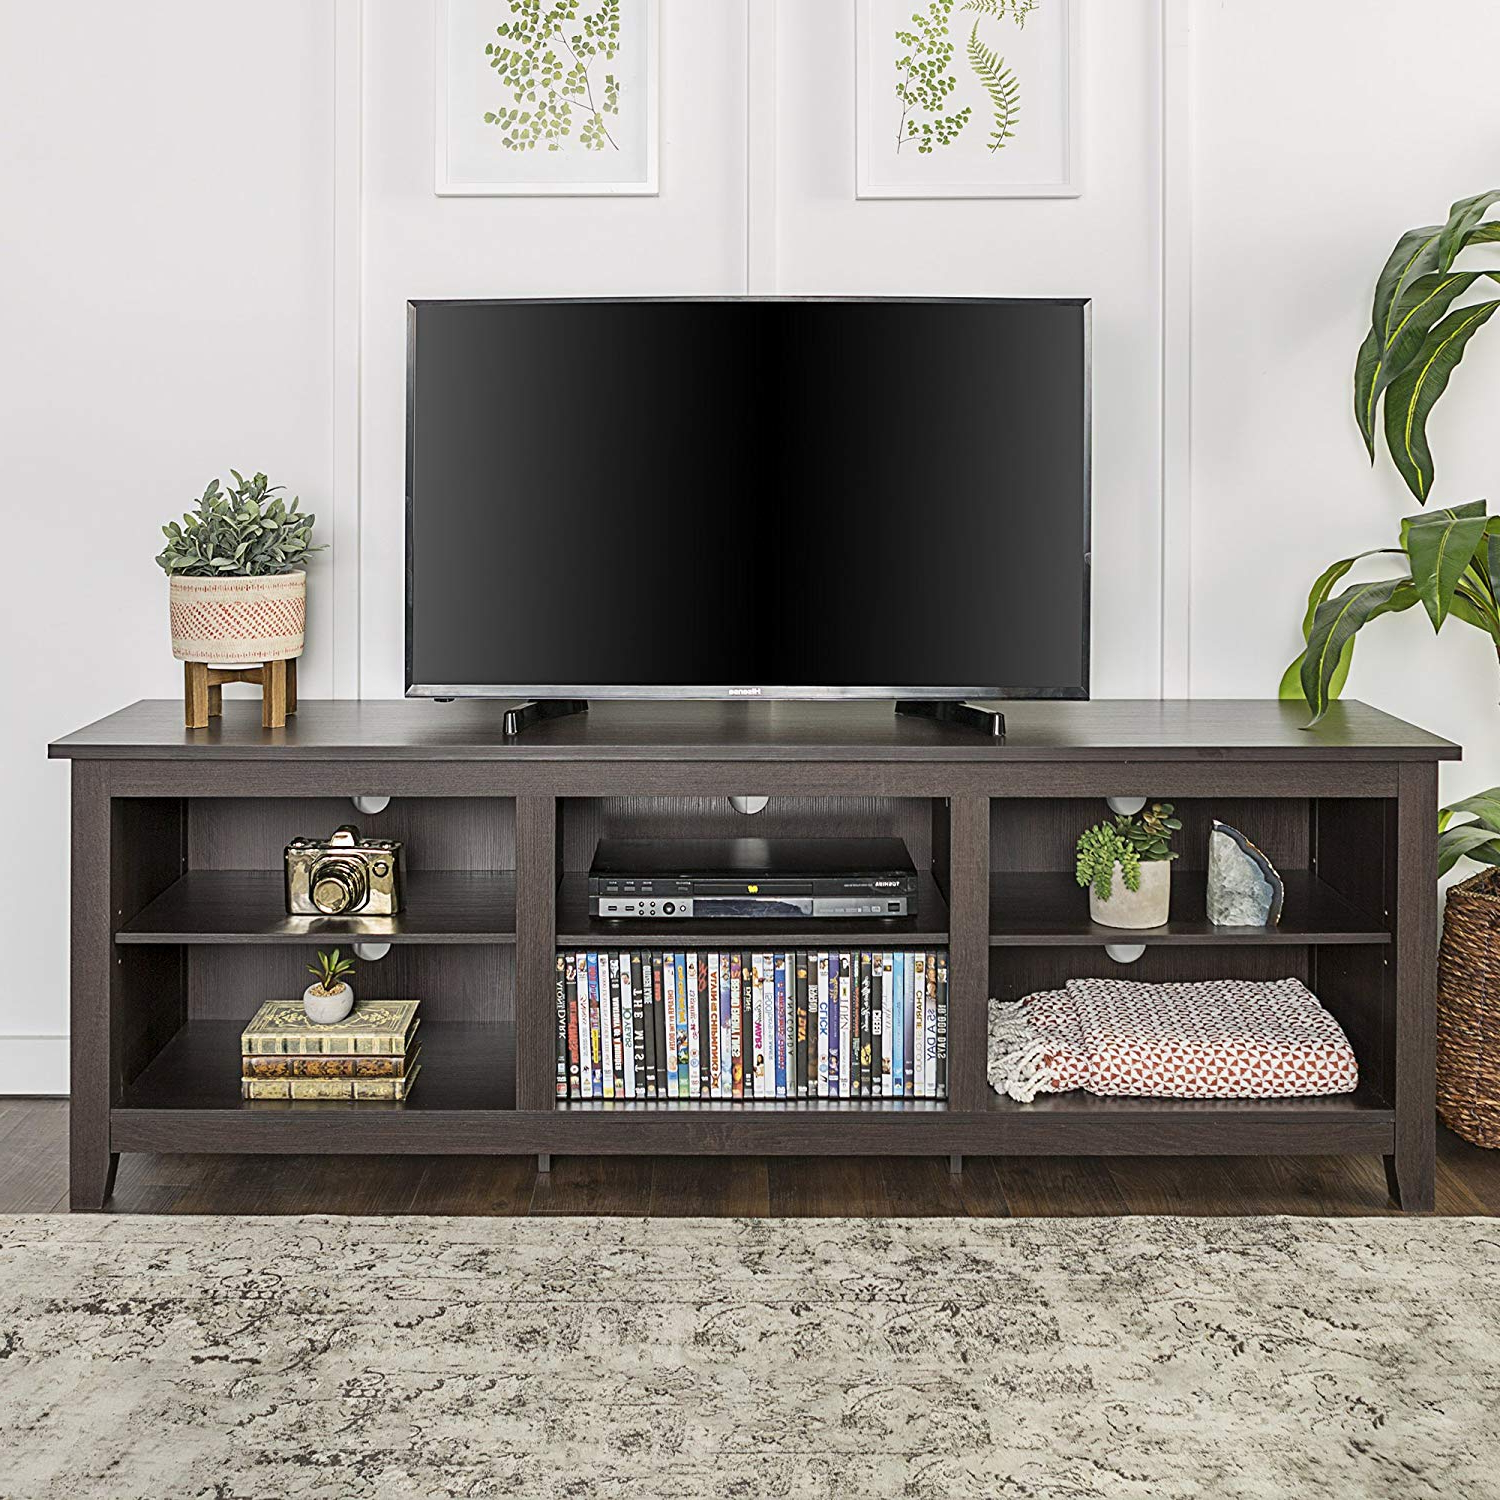 """Amazon: We Furniture 70"""" Espresso Wood Tv Stand Console: Kitchen Regarding Newest Maddy 70 Inch Tv Stands (View 3 of 20)"""